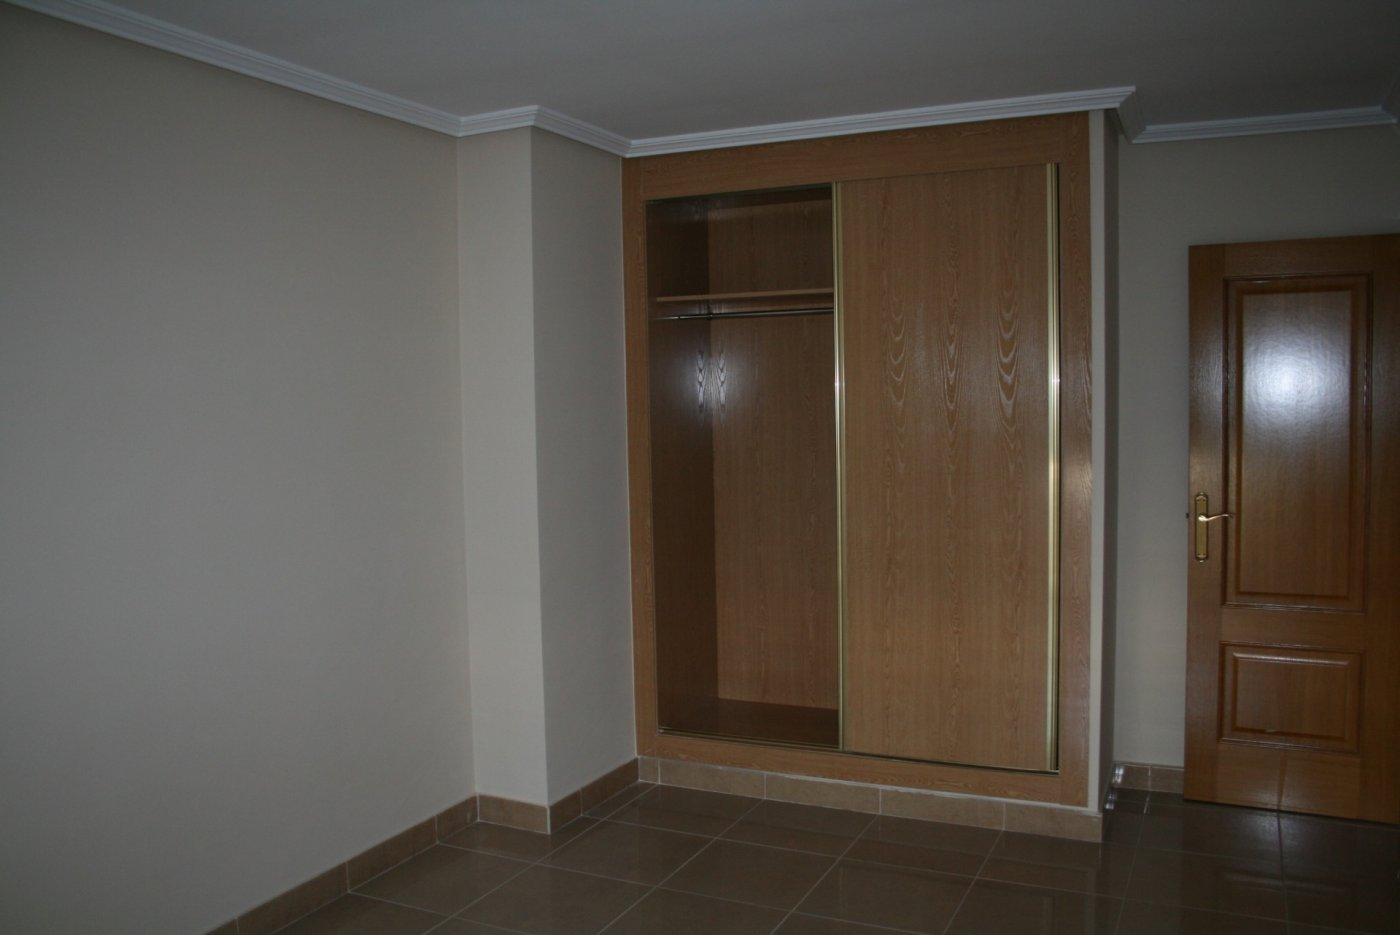 Image 2 Flat ref 2680 for rent in El Palmar Spain - Quality Homes Costa Cálida